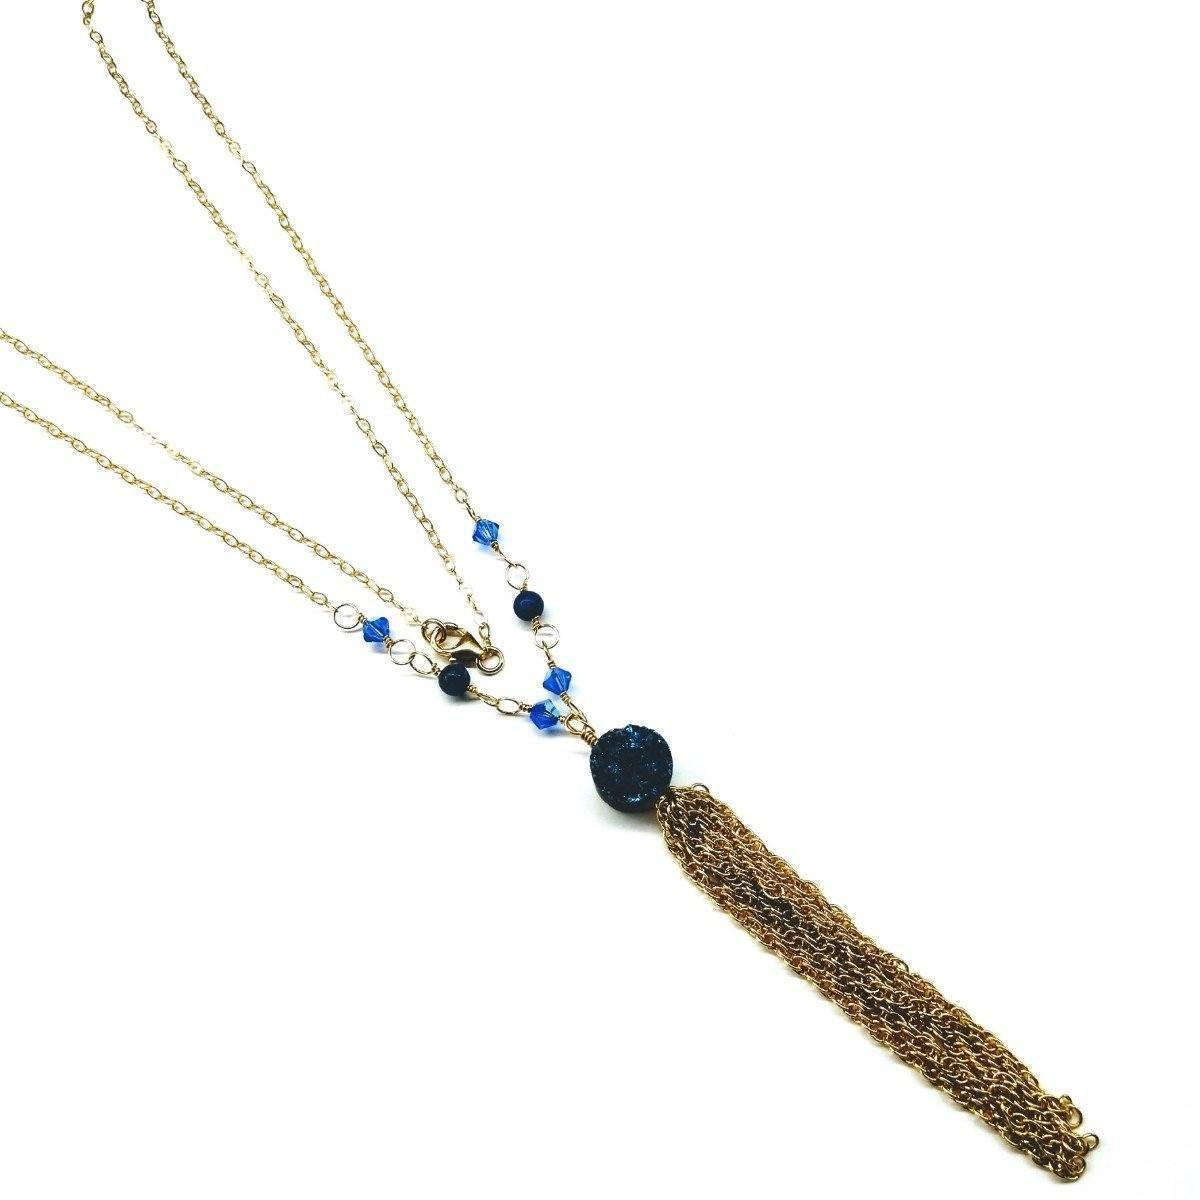 14 Kt Gold Filled Blue Agate Druzy Long Tassel Necklace